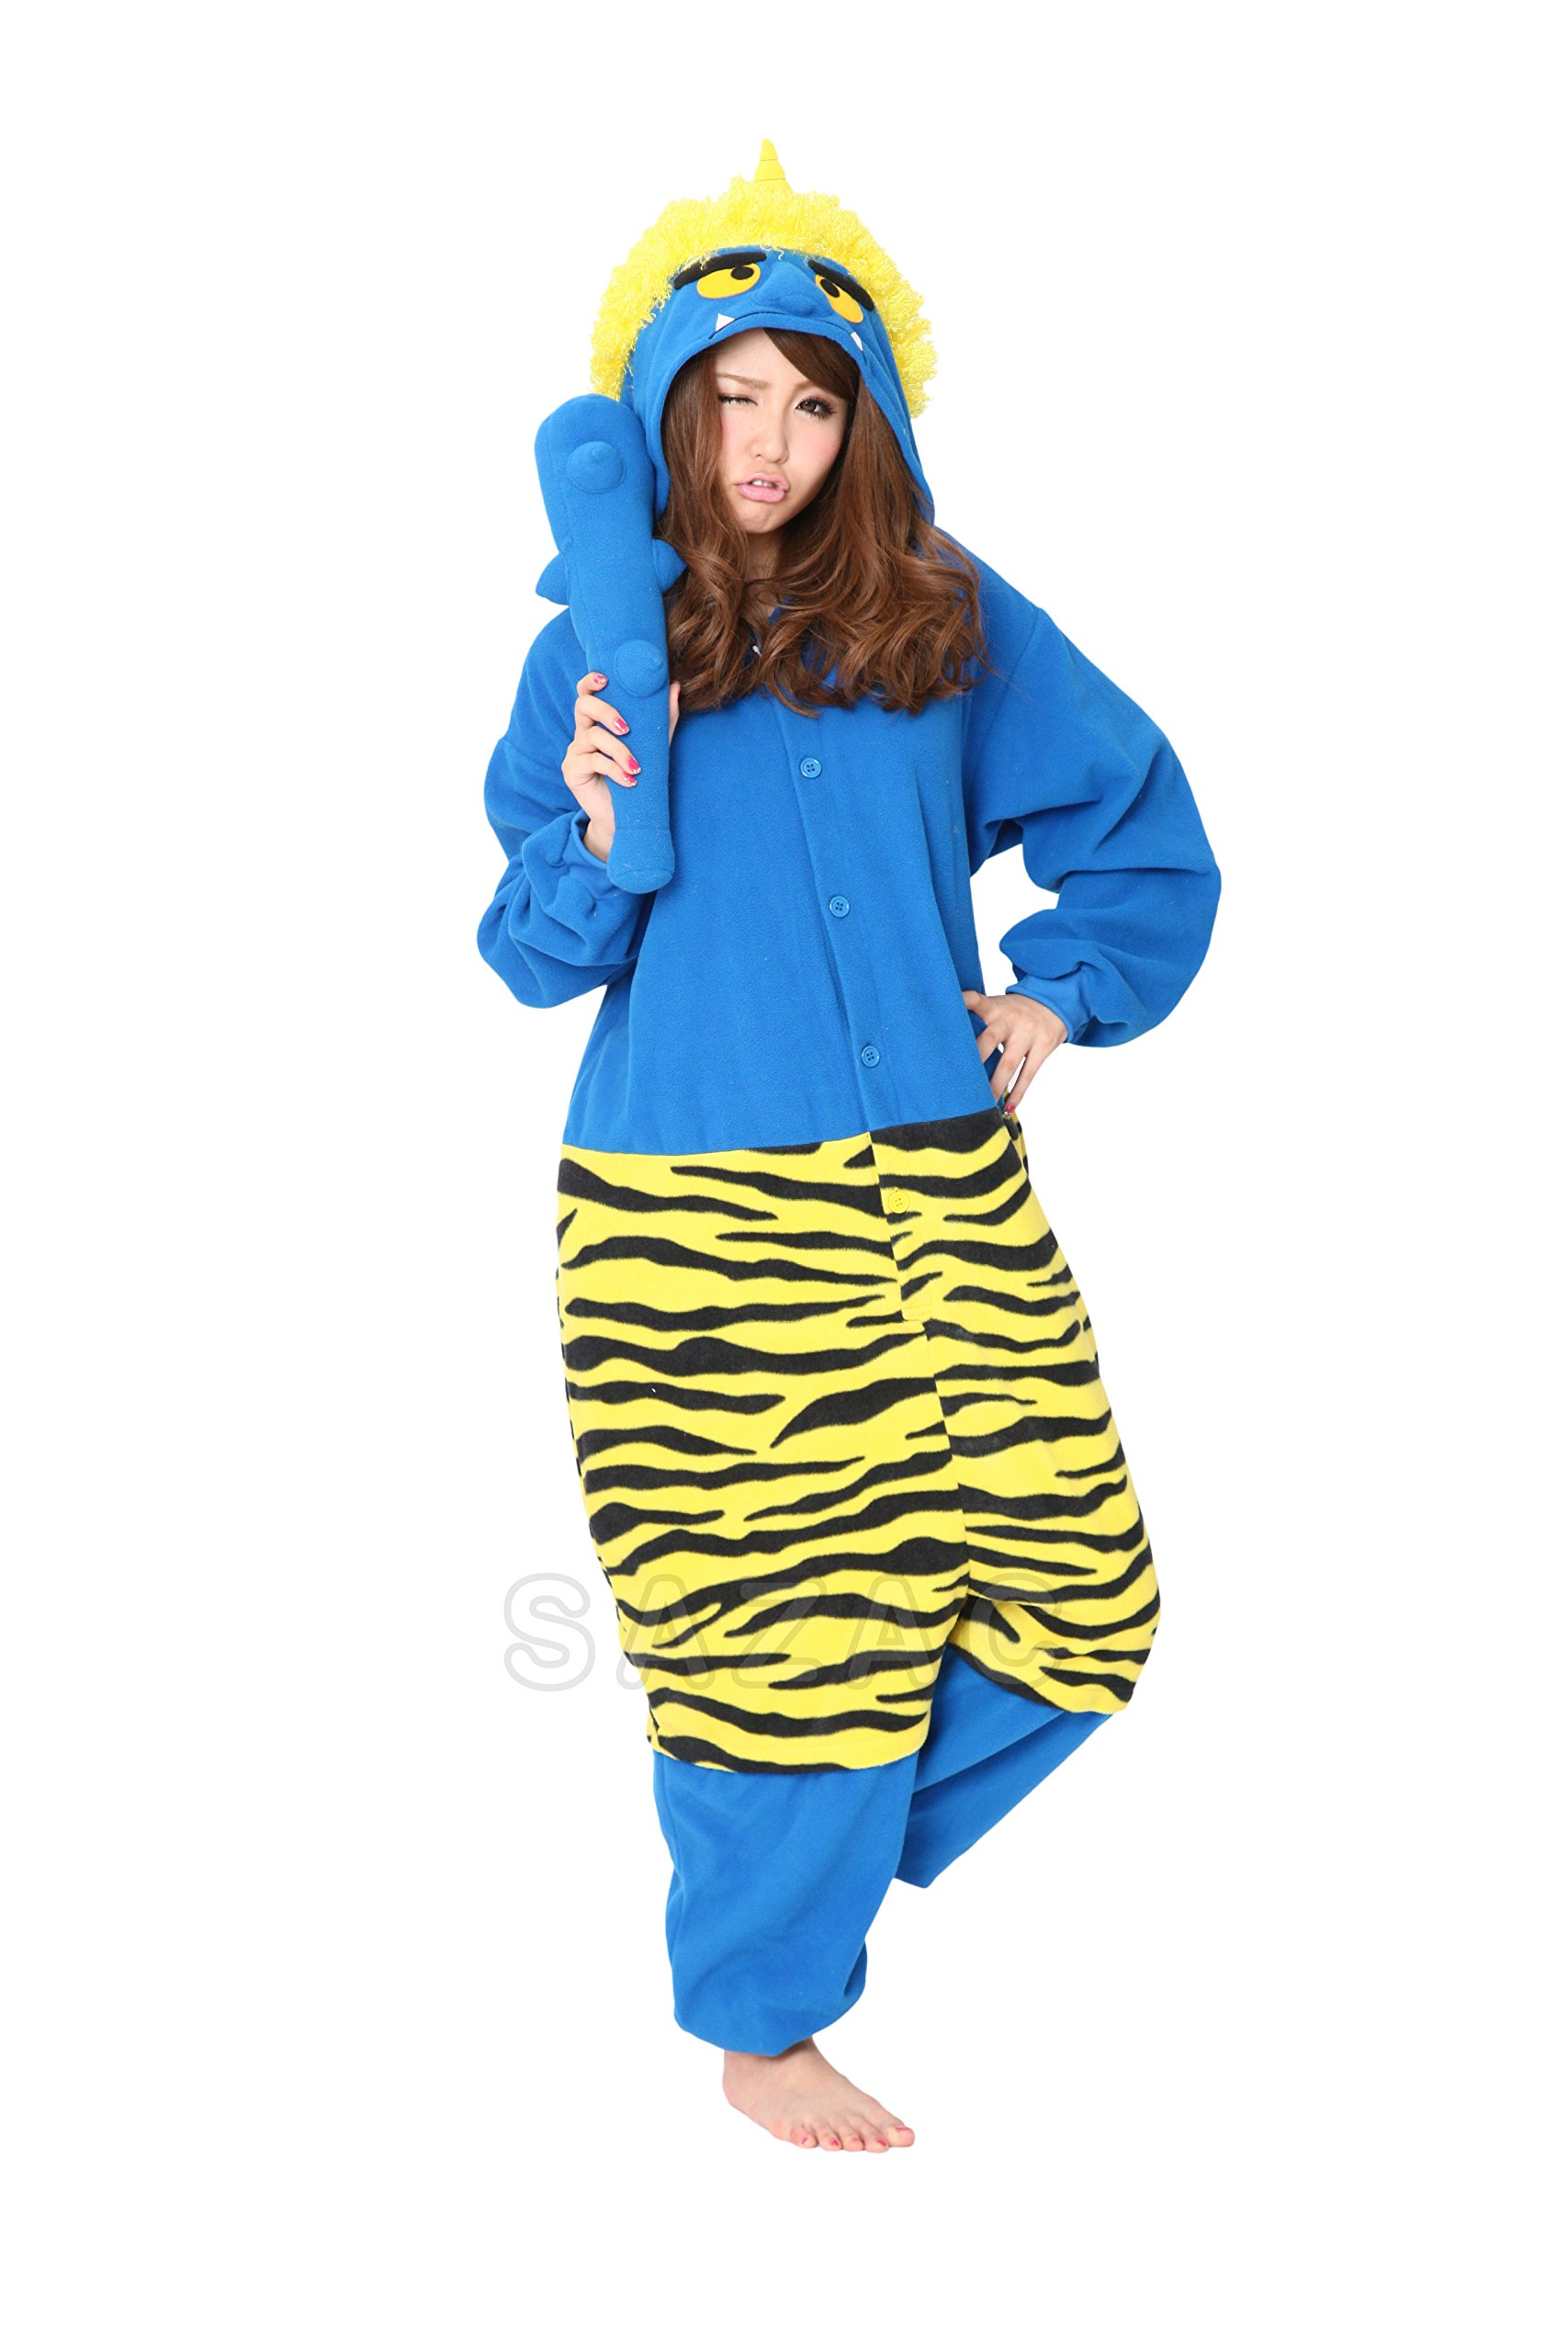 Sazac Sazac Blue Demon Kigurumi - Fancy Dress Costume Pajama